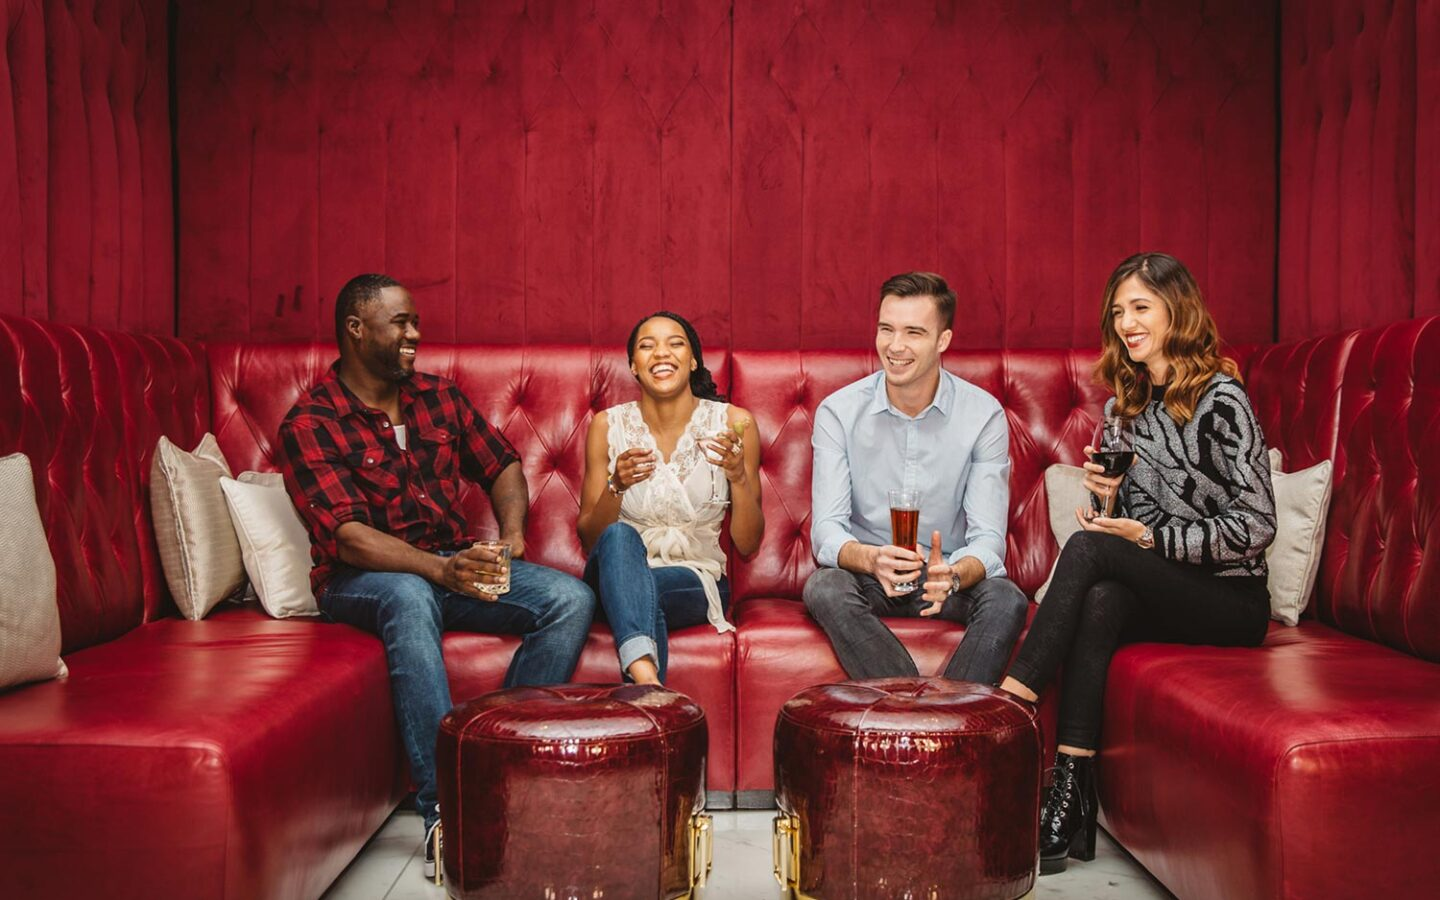 four people sitting on a red couch laughing